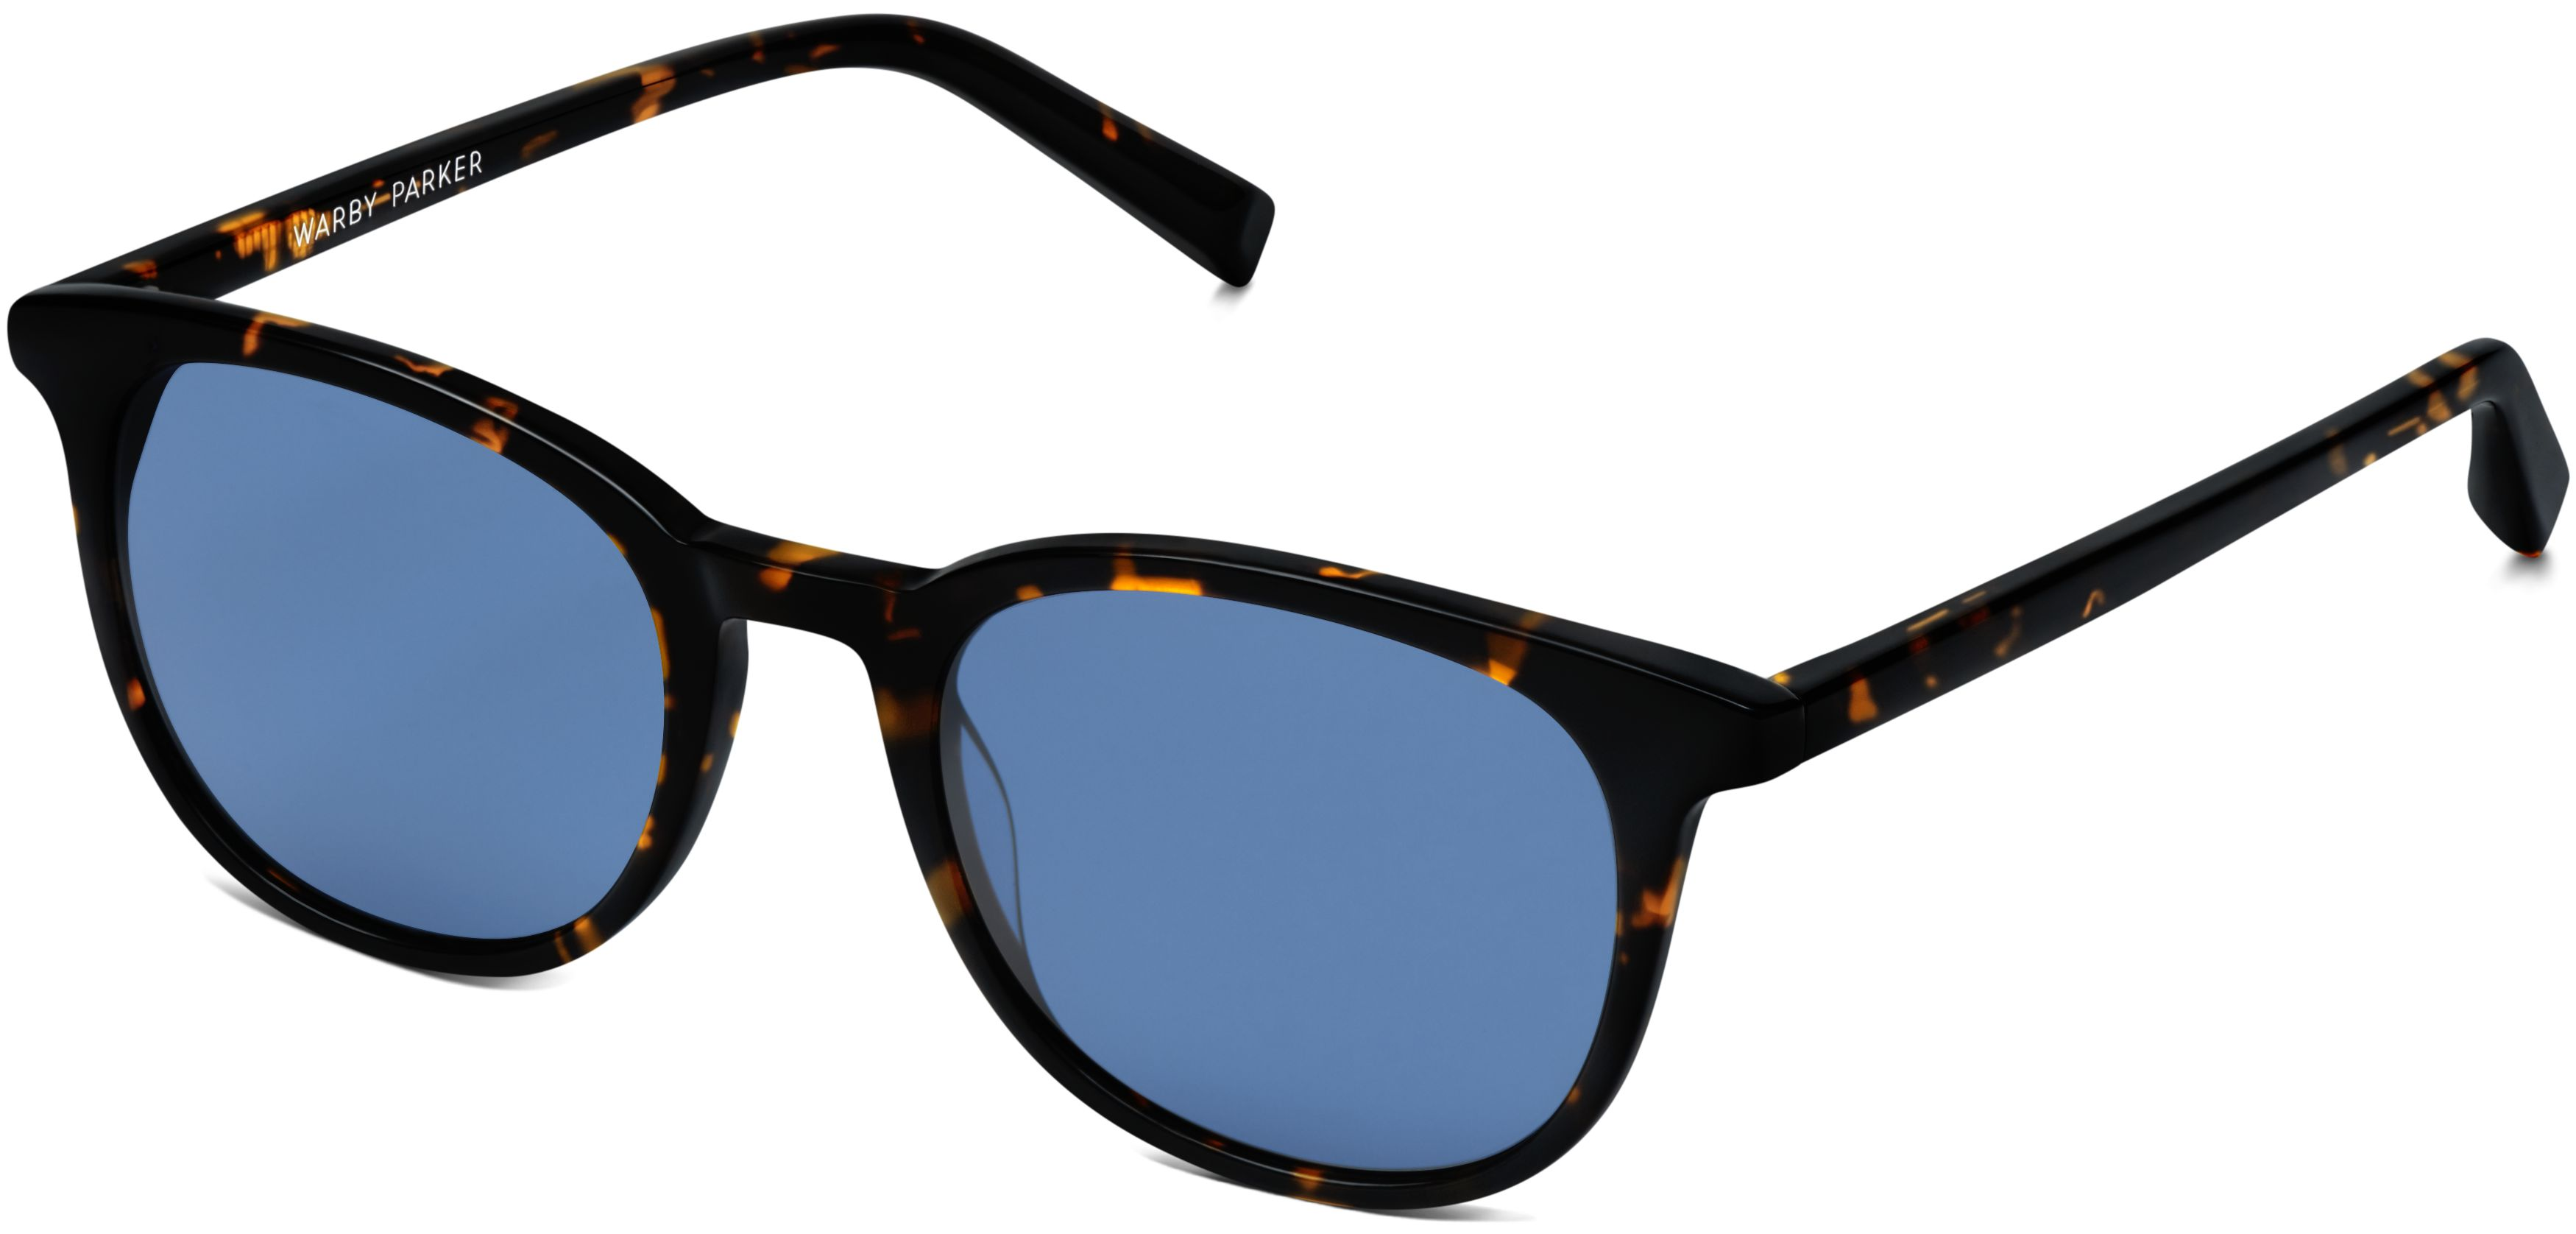 Durand Sunglasses in Whiskey Tortoise with Classic Blue lenses for Men |  Warby Parker